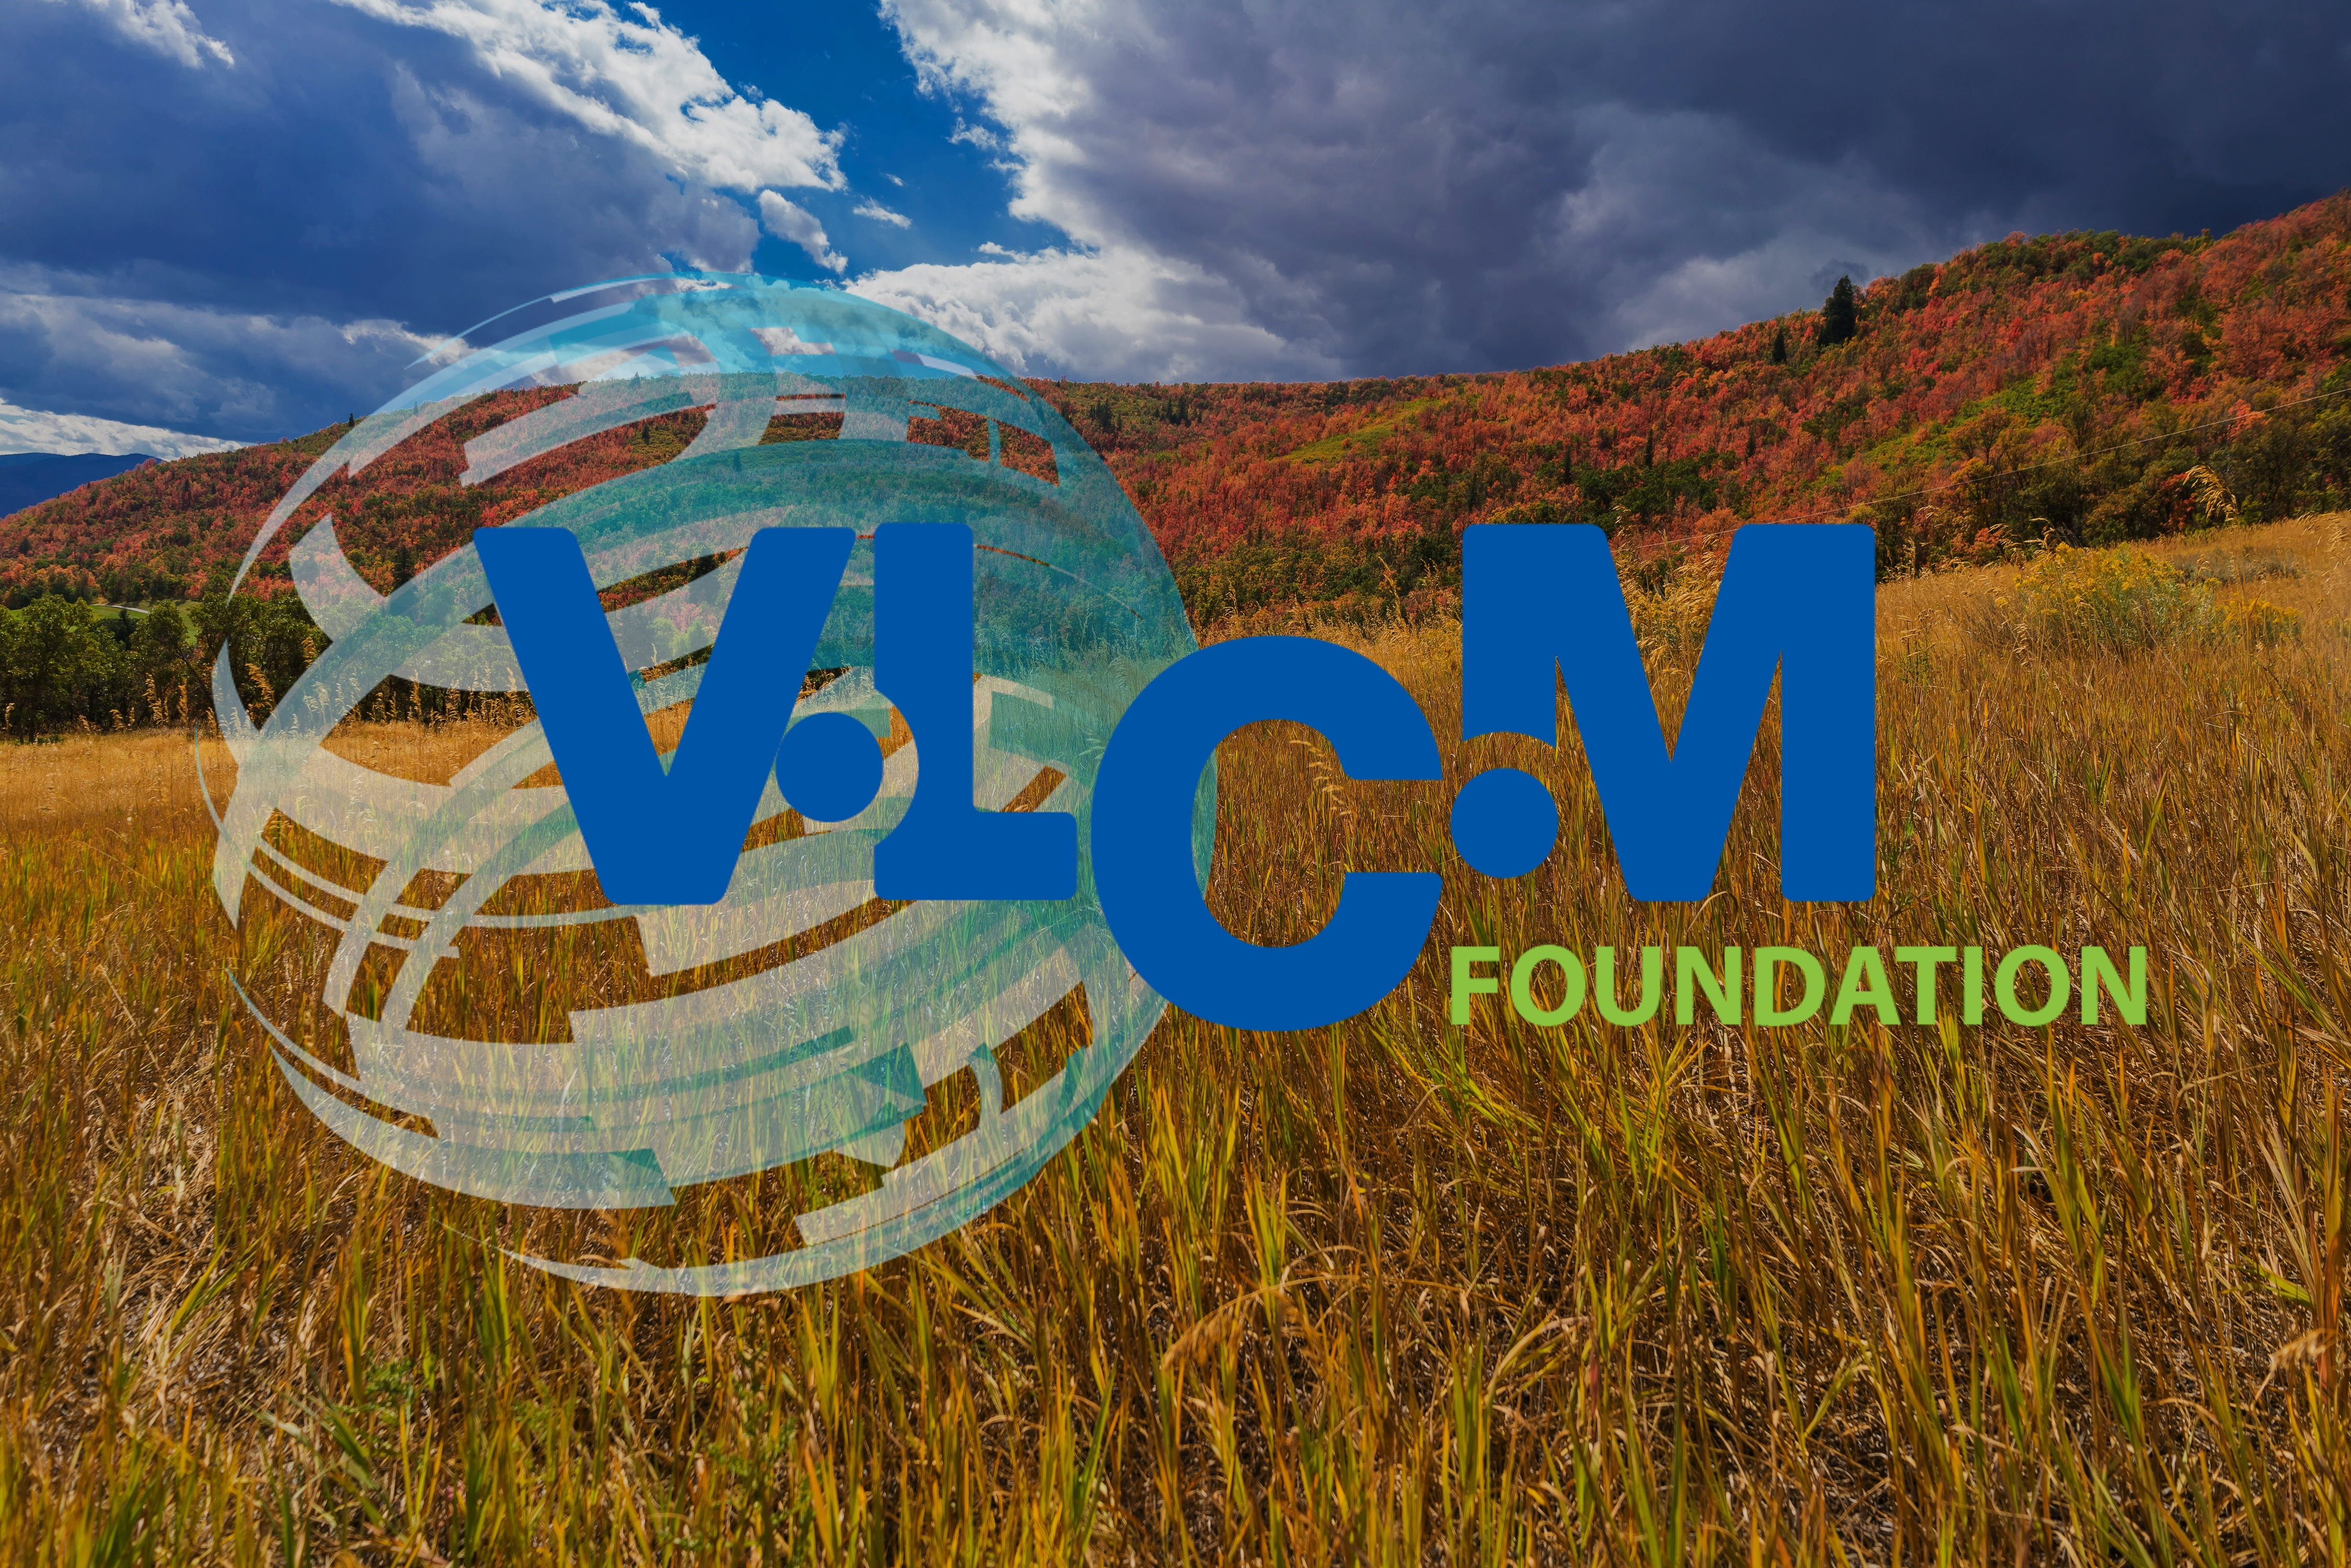 VLCM Foundation